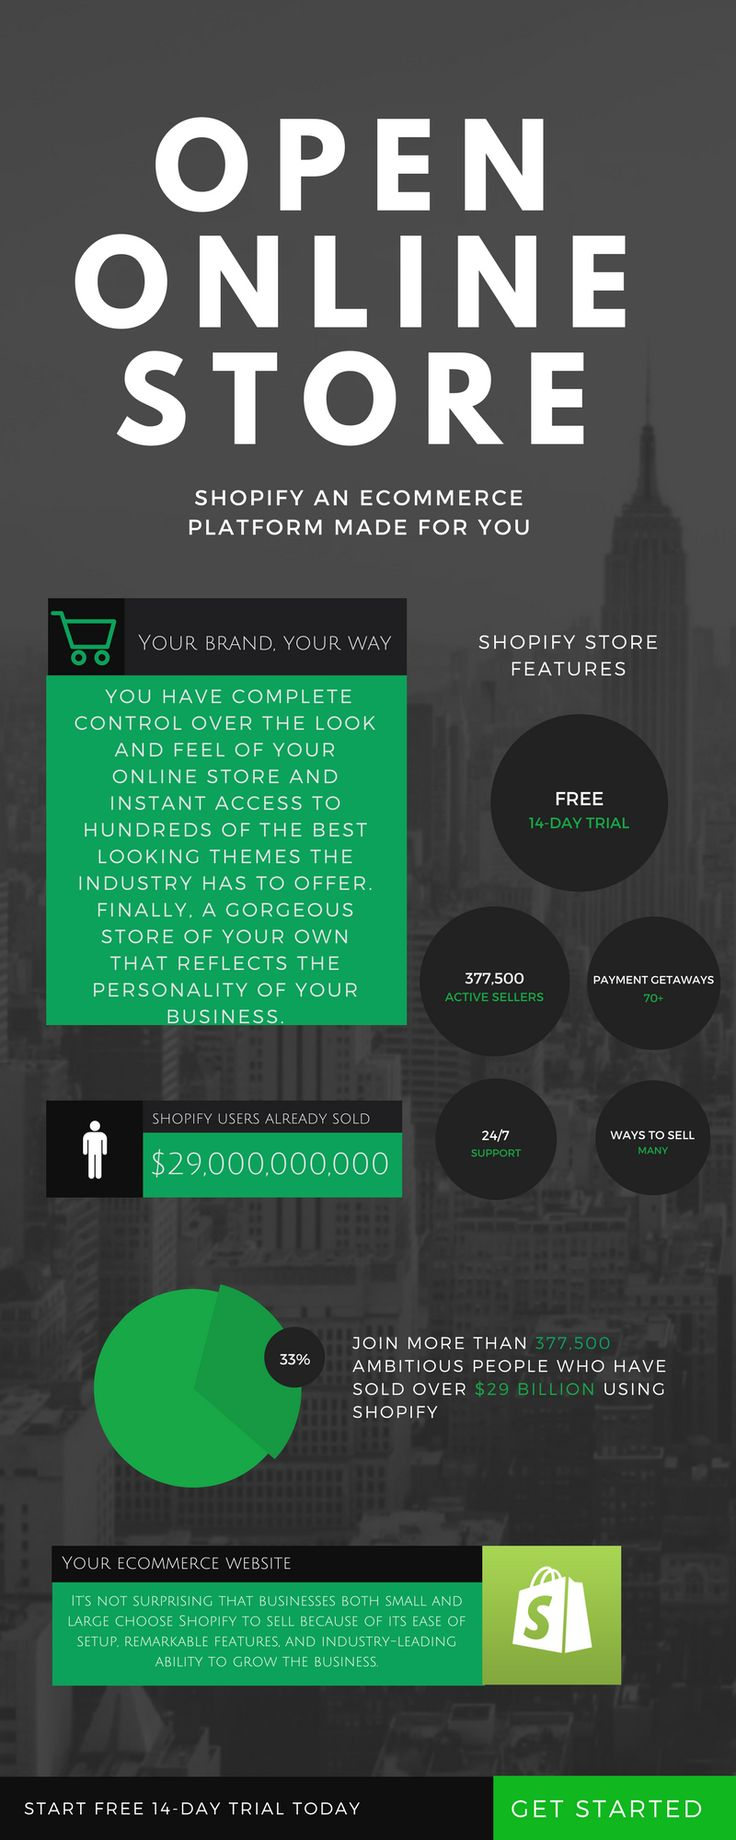 You have complete control over the look and feel of your online store and instant access to hundreds of the best looking themes the industry has to offer. Finally, a gorgeous store of your own that reflects the personality of your business. Join more than 377,500 ambitious people who have sold over $29 billion using Shopify. Start Your Free 14-day Trial Today! http://1.shopifytrack.com/aff_c?offer_id=2&aff_id=20035